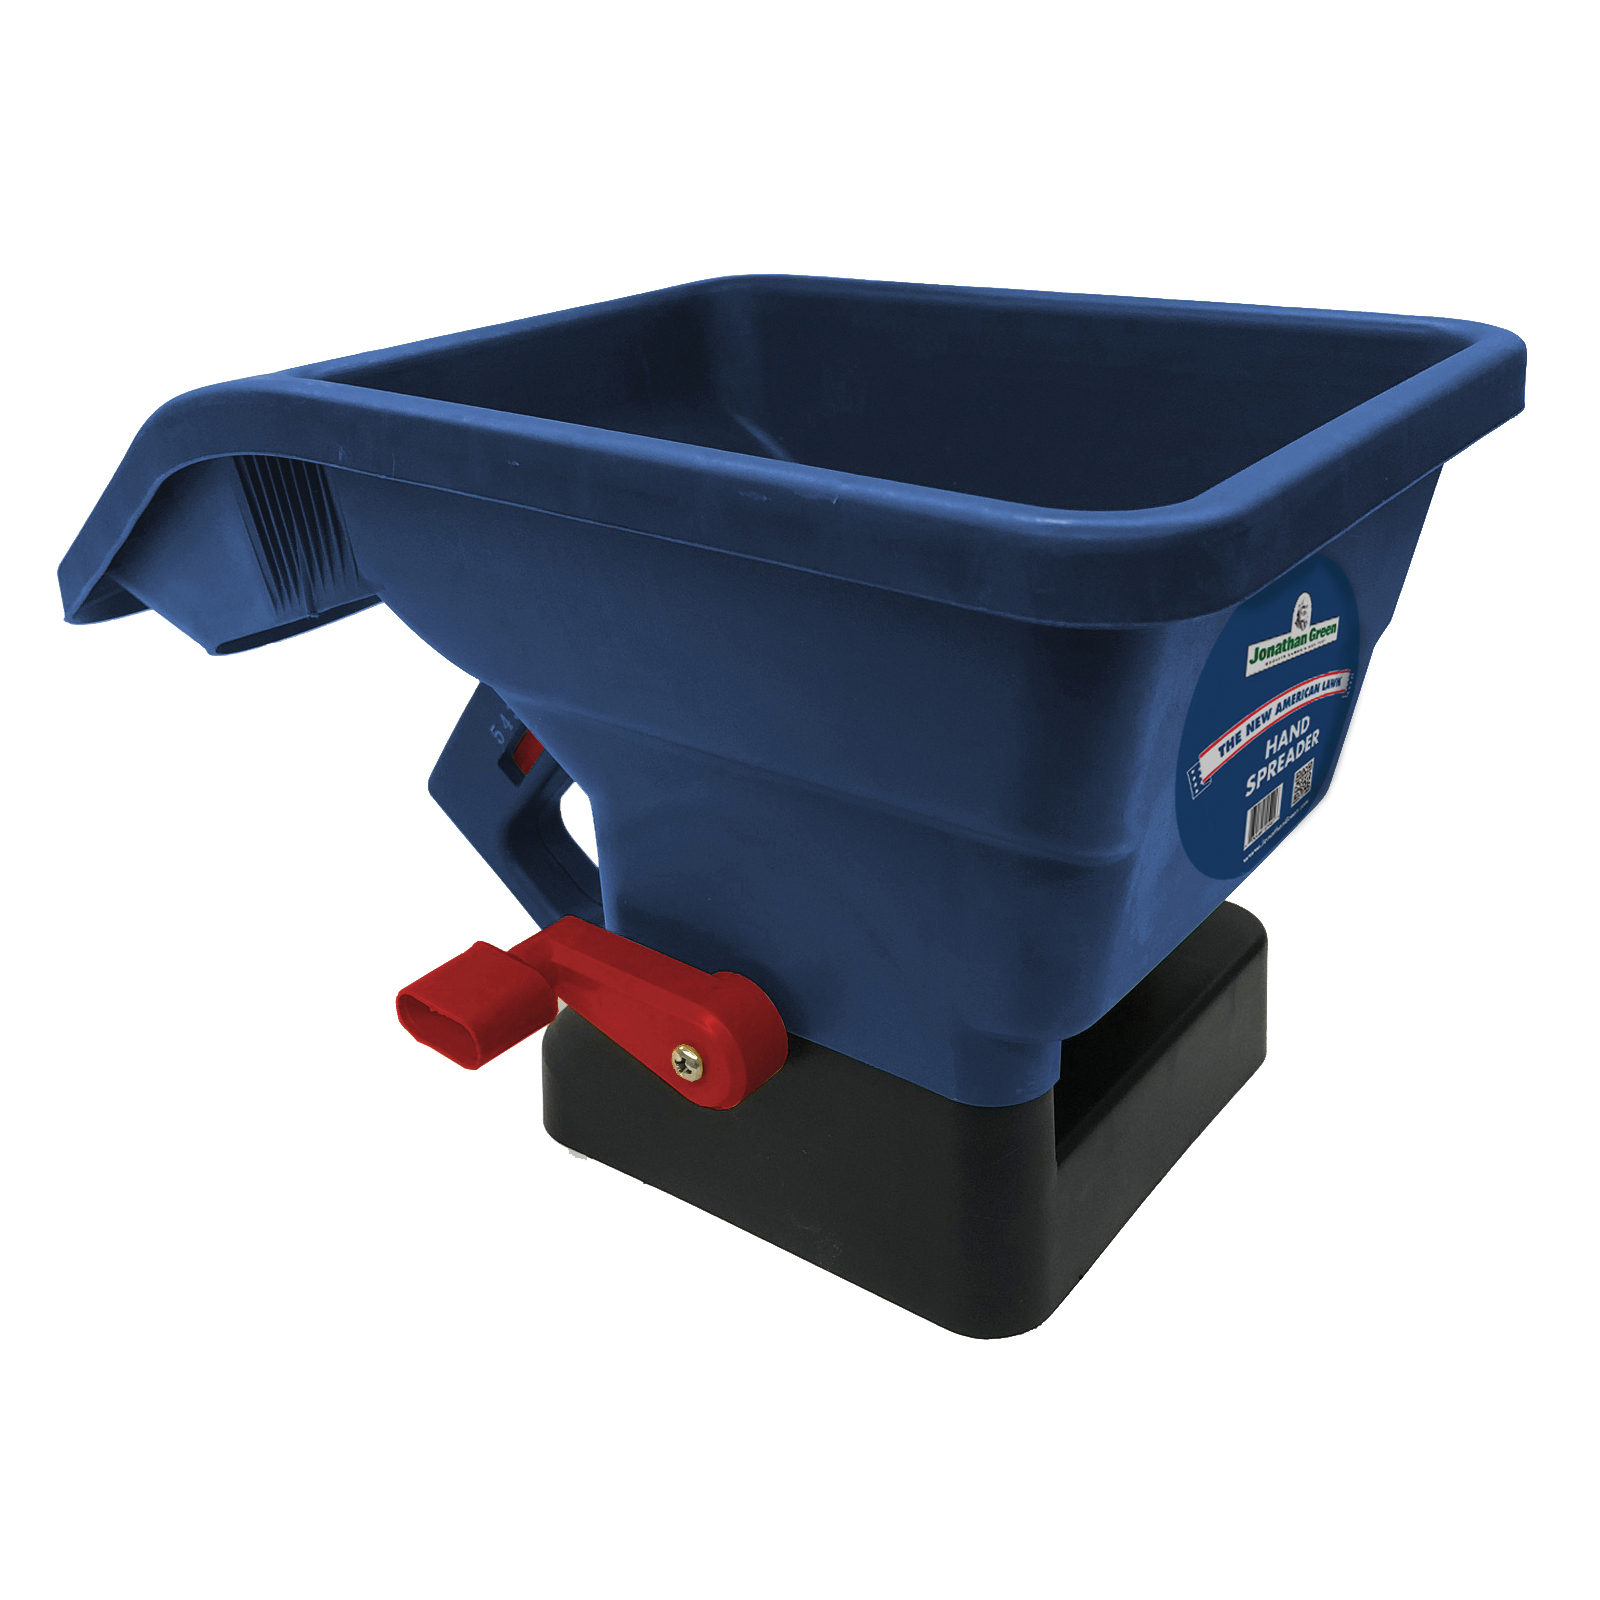 Picture of Jonathan Green 10941 Hand Spreader, 10 lb Capacity, 1000 sq-ft Coverage Area, Polypropylene